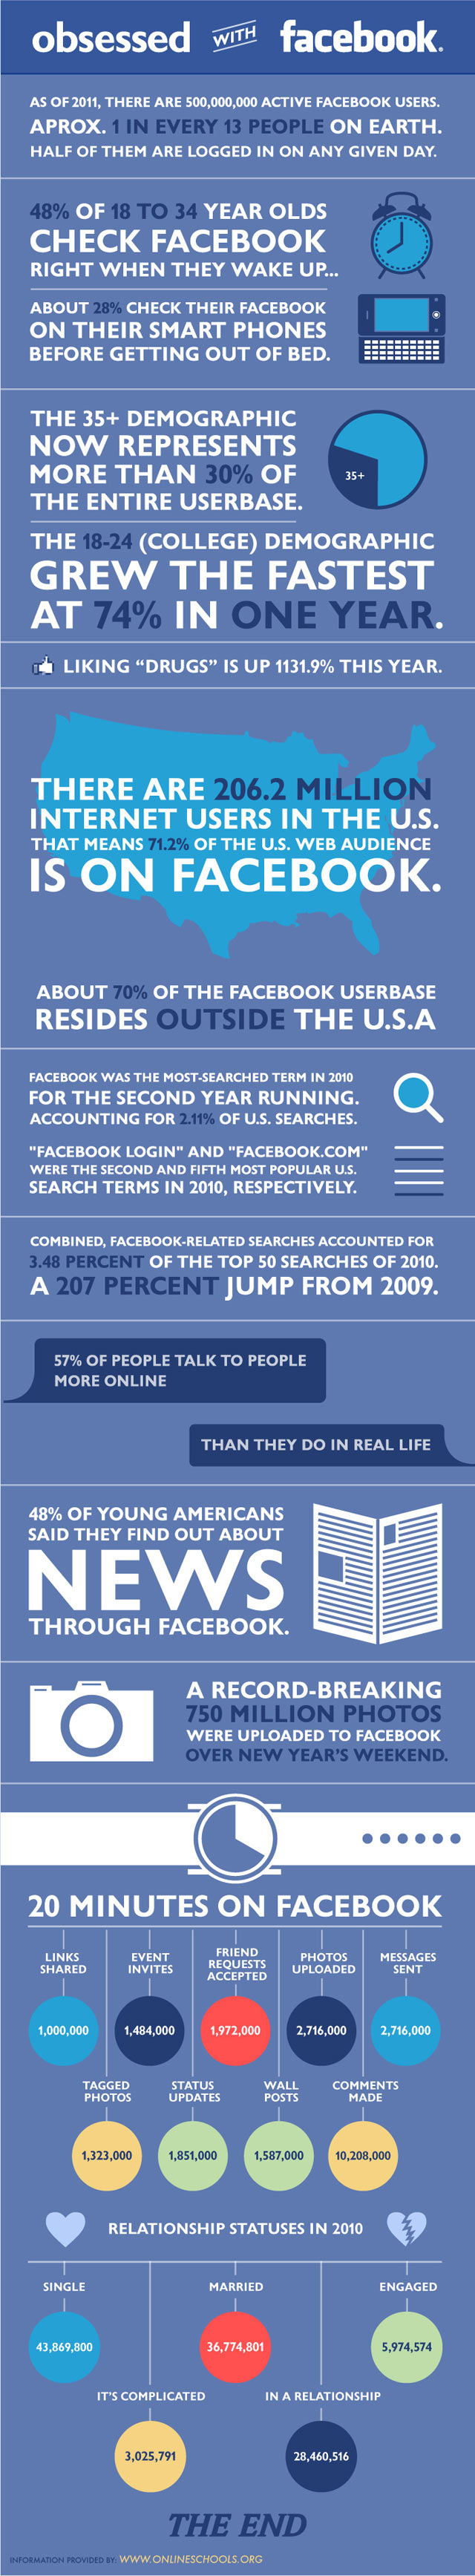 Infographie - L'obsession facebook aux USA